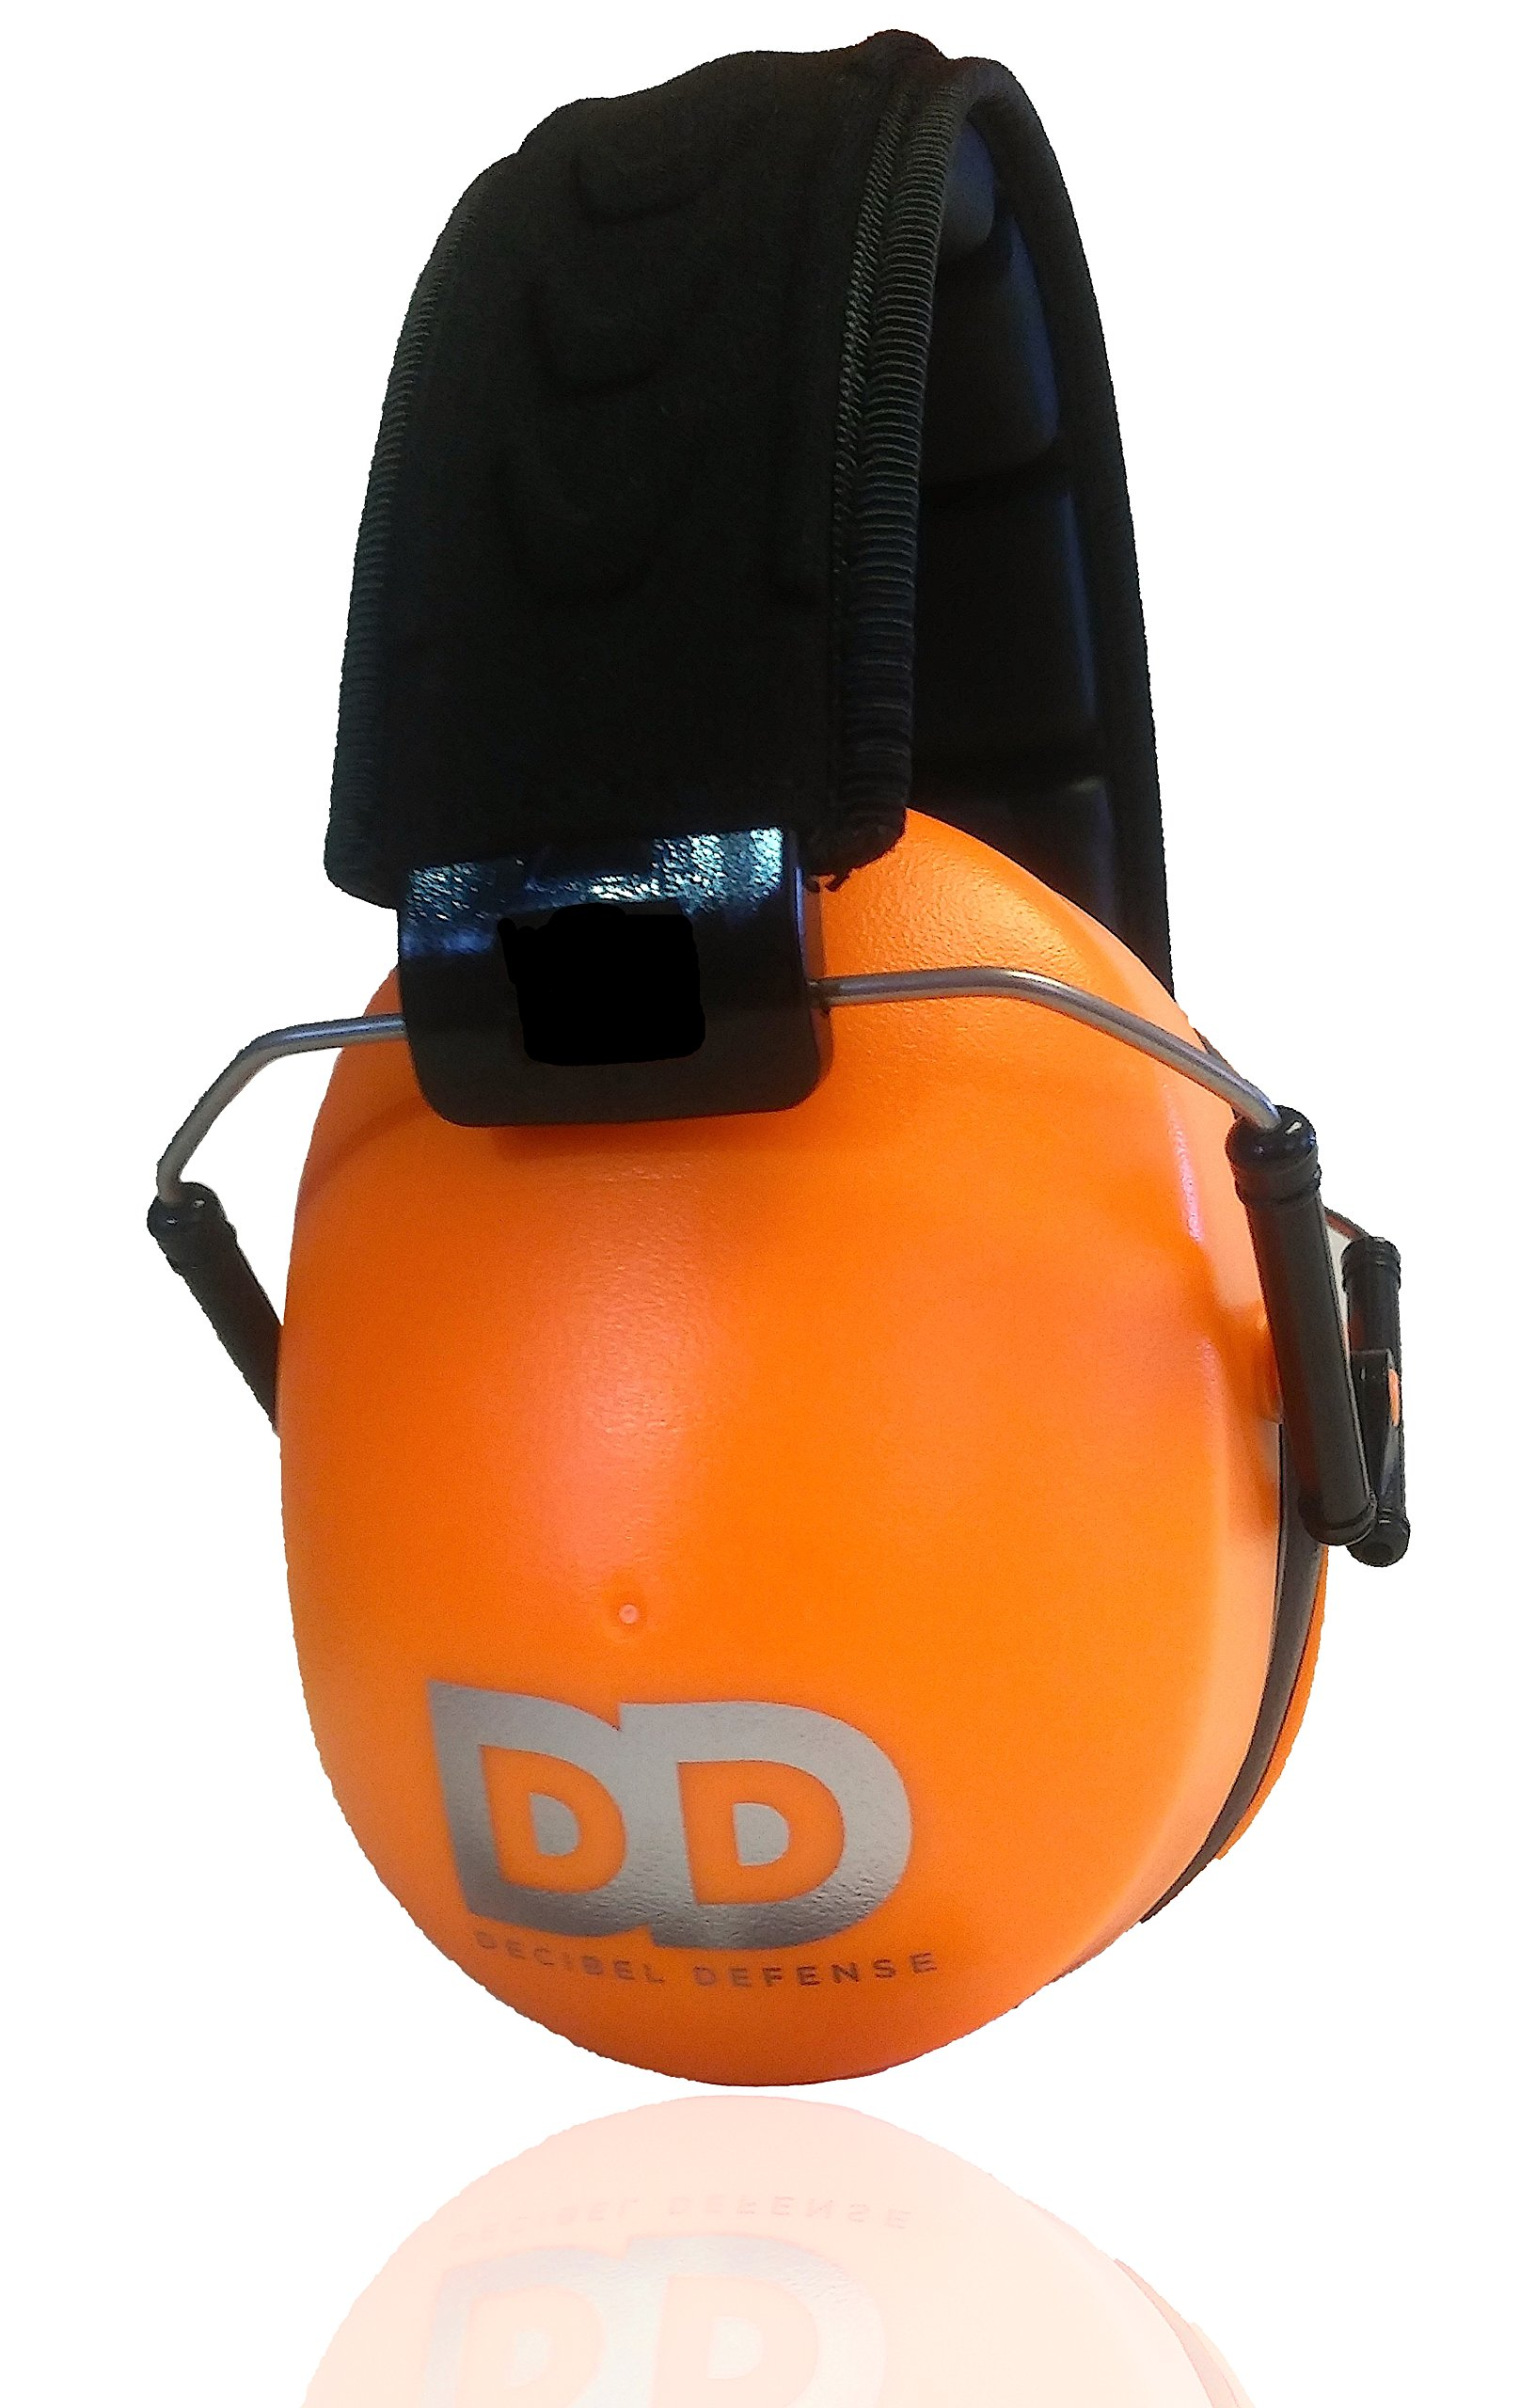 Professional Safety Ear Muffs by Decibel Defense - 37dB NRR - The HIGHEST Rated & MOST COMFORTABLE Ear Protection For Shooting & Industrial Use - THE BEST HEARING PROTECTION.GUARANTEE by DECIBEL DEFENSE